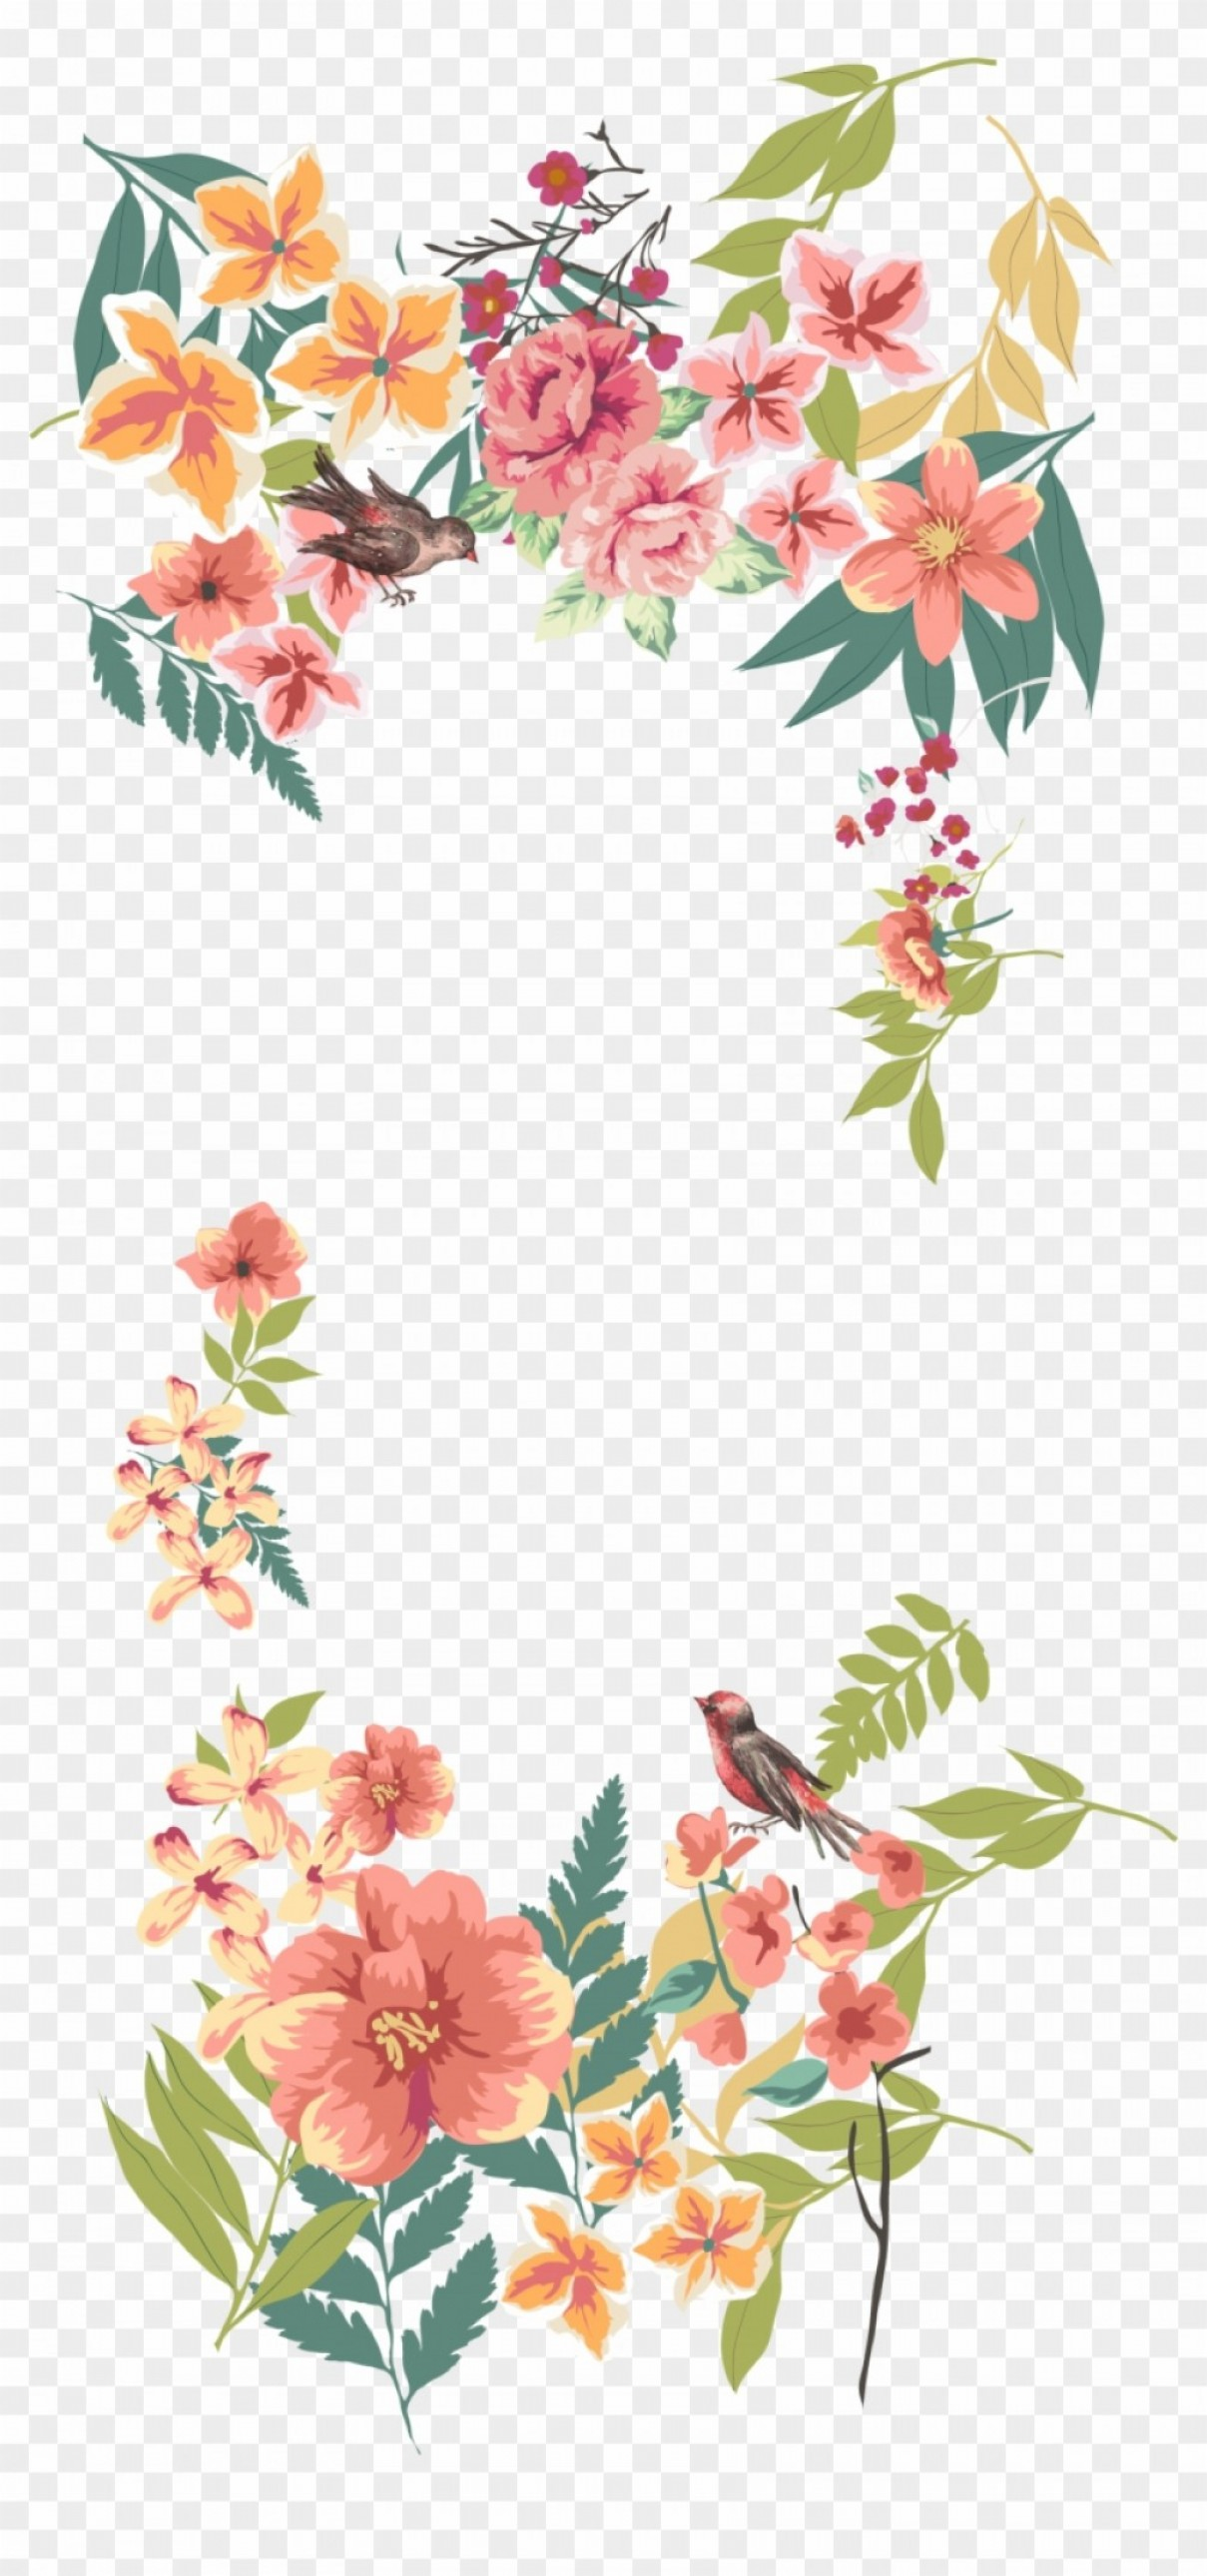 Mighhikbflower Euclidean Vector Floral Design Flowers Border Png.